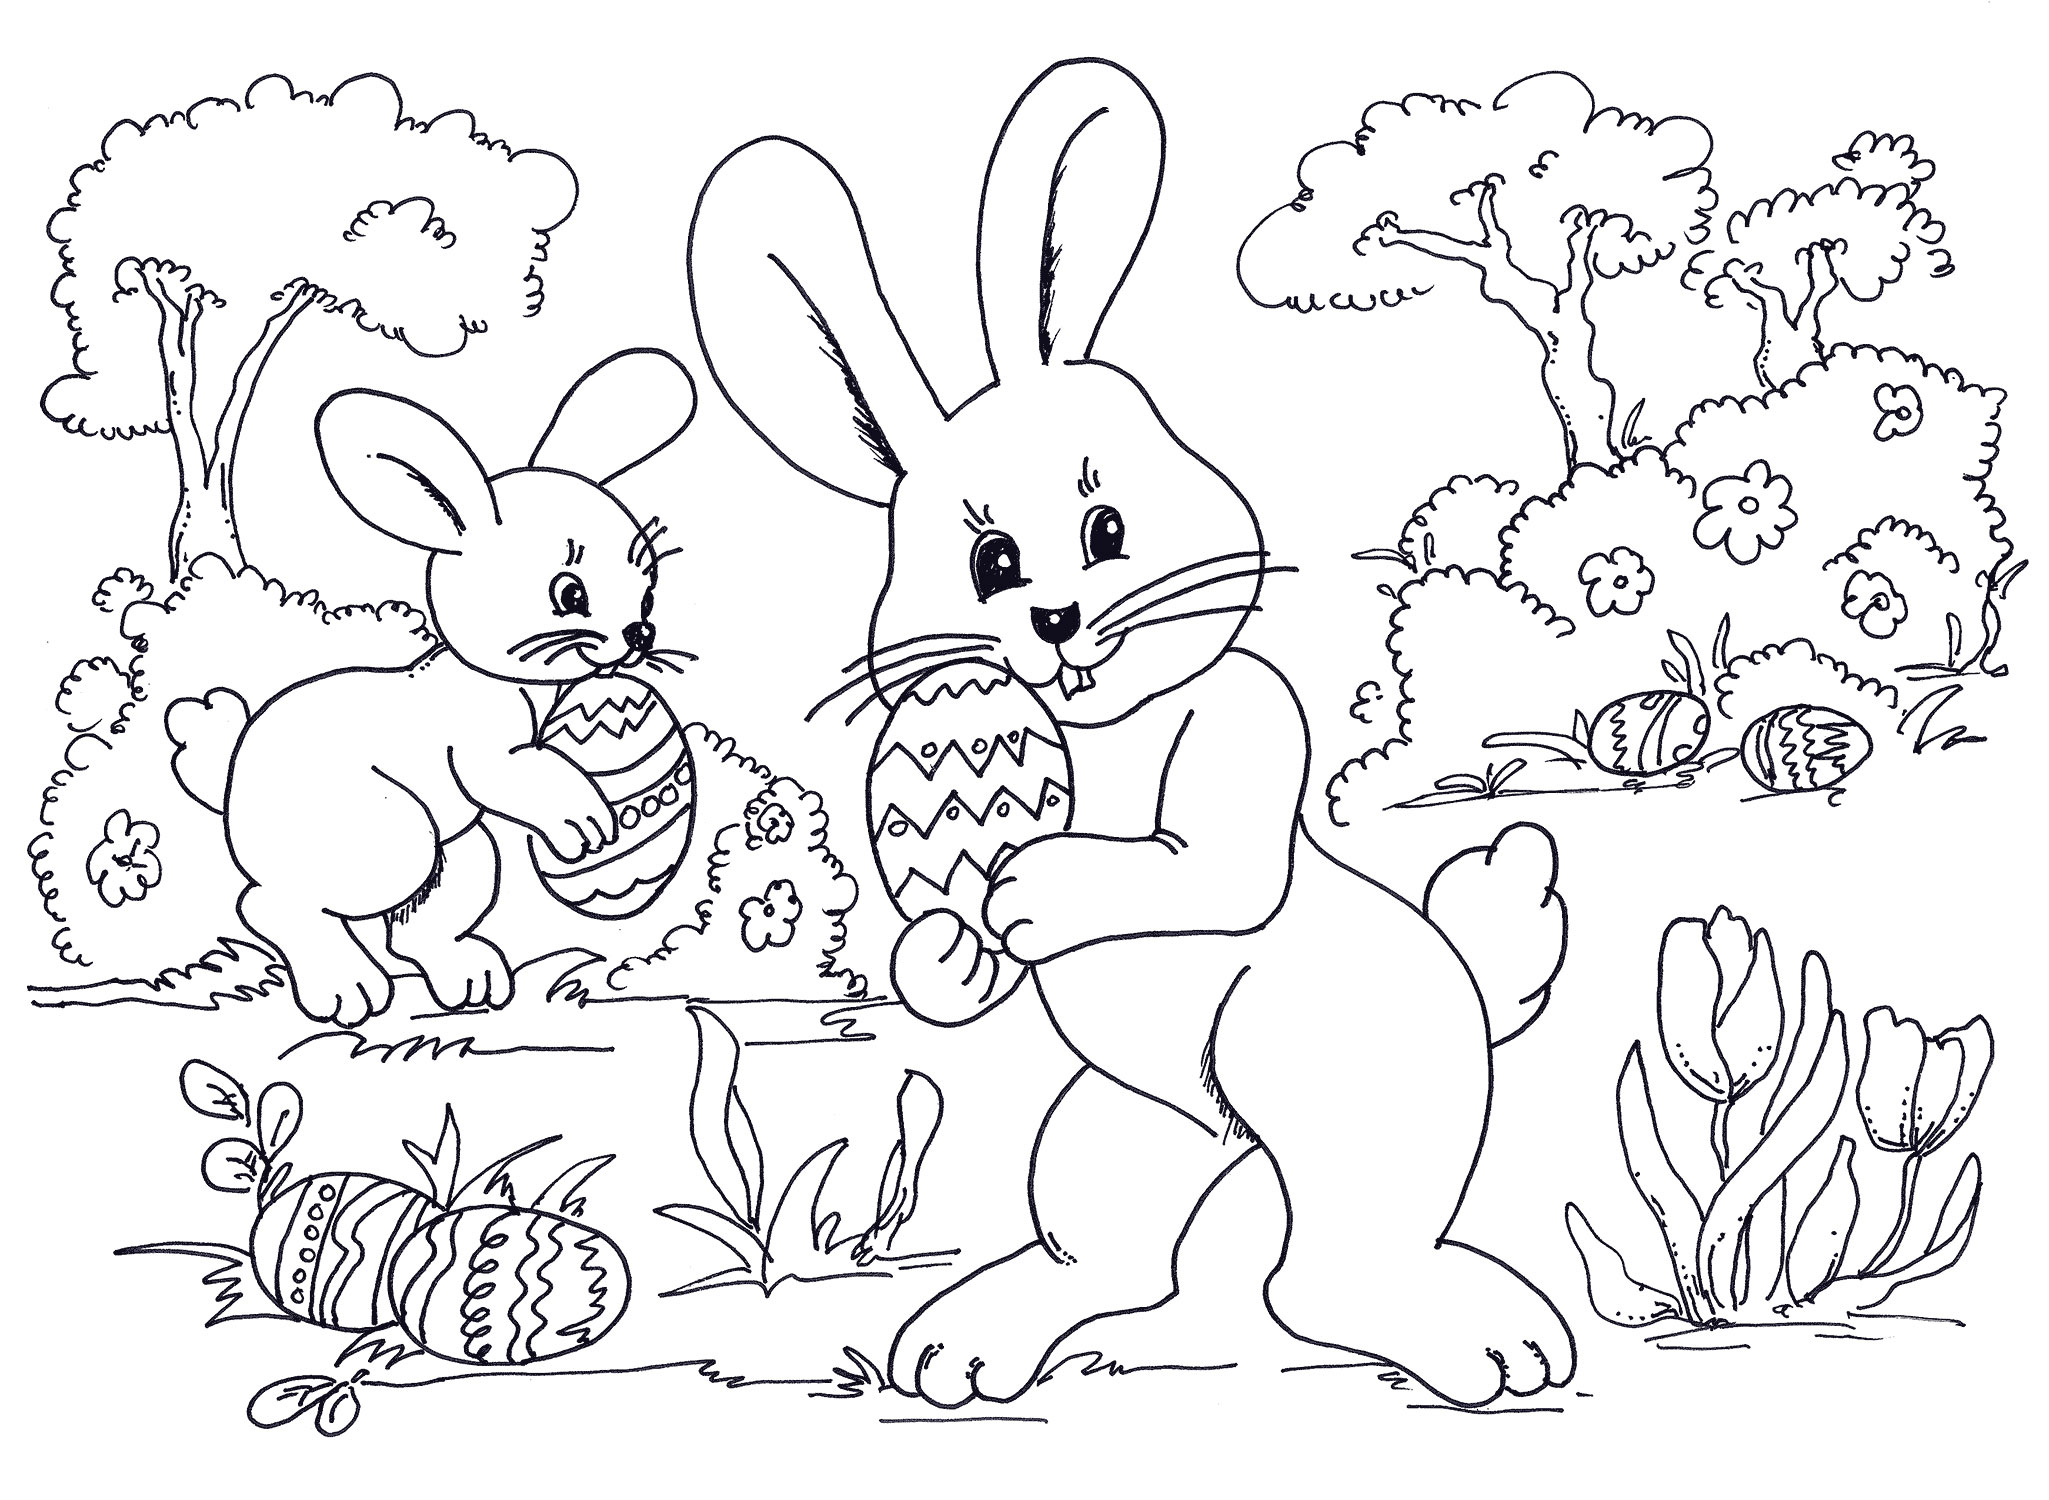 Free Easter Coloring Pages Easter Coloring Pages Best Coloring Pages to Print Of Easter Coloring Printable Easter Coloring Pages Coloring Gallery